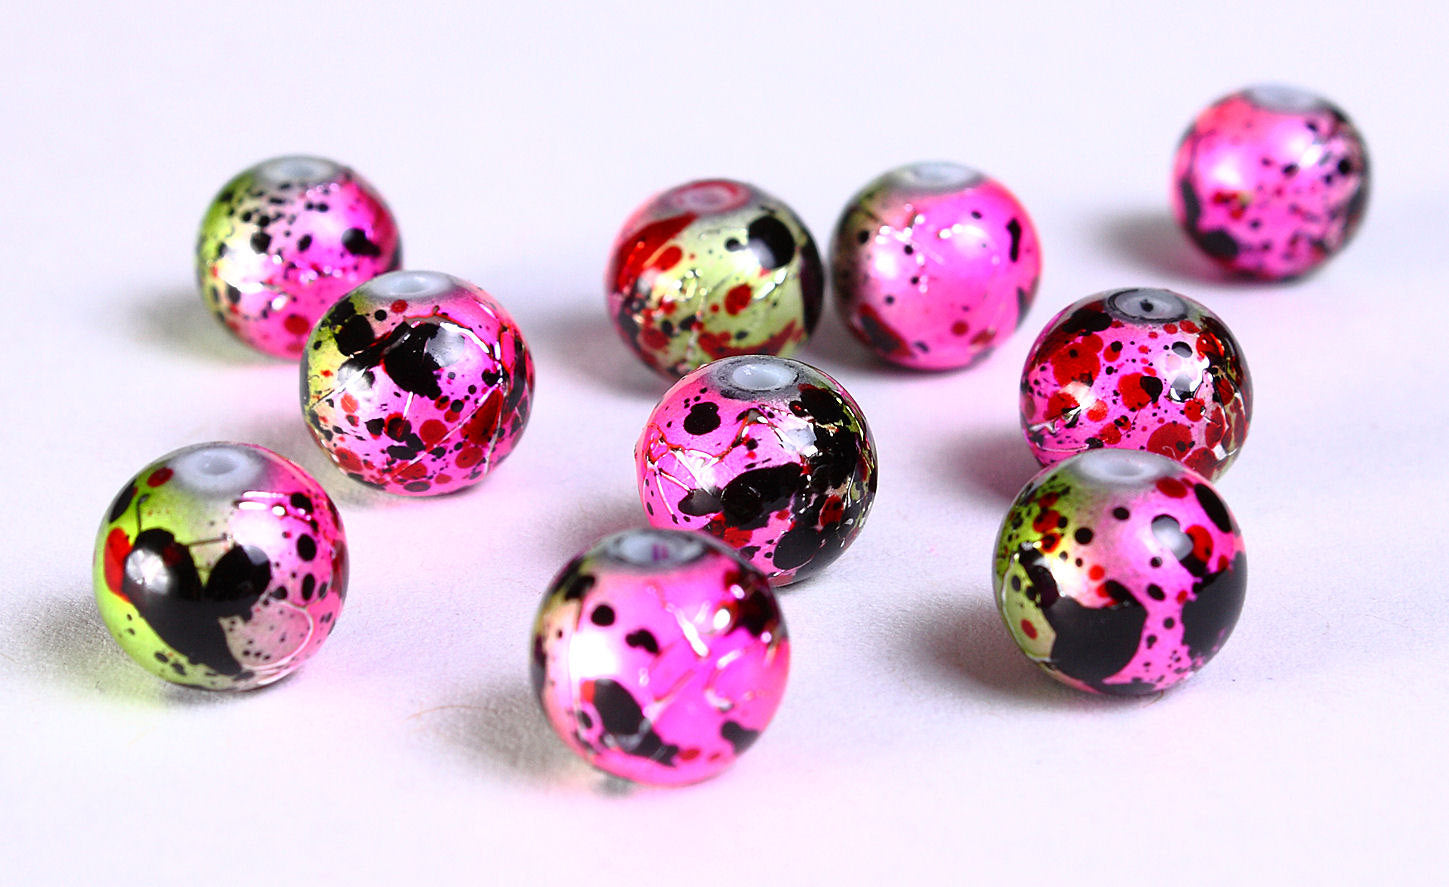 8mm Drawbench pink green yellow black beads - 8mm round glass bead - 8mm spray painted beads - 10 pieces (832)